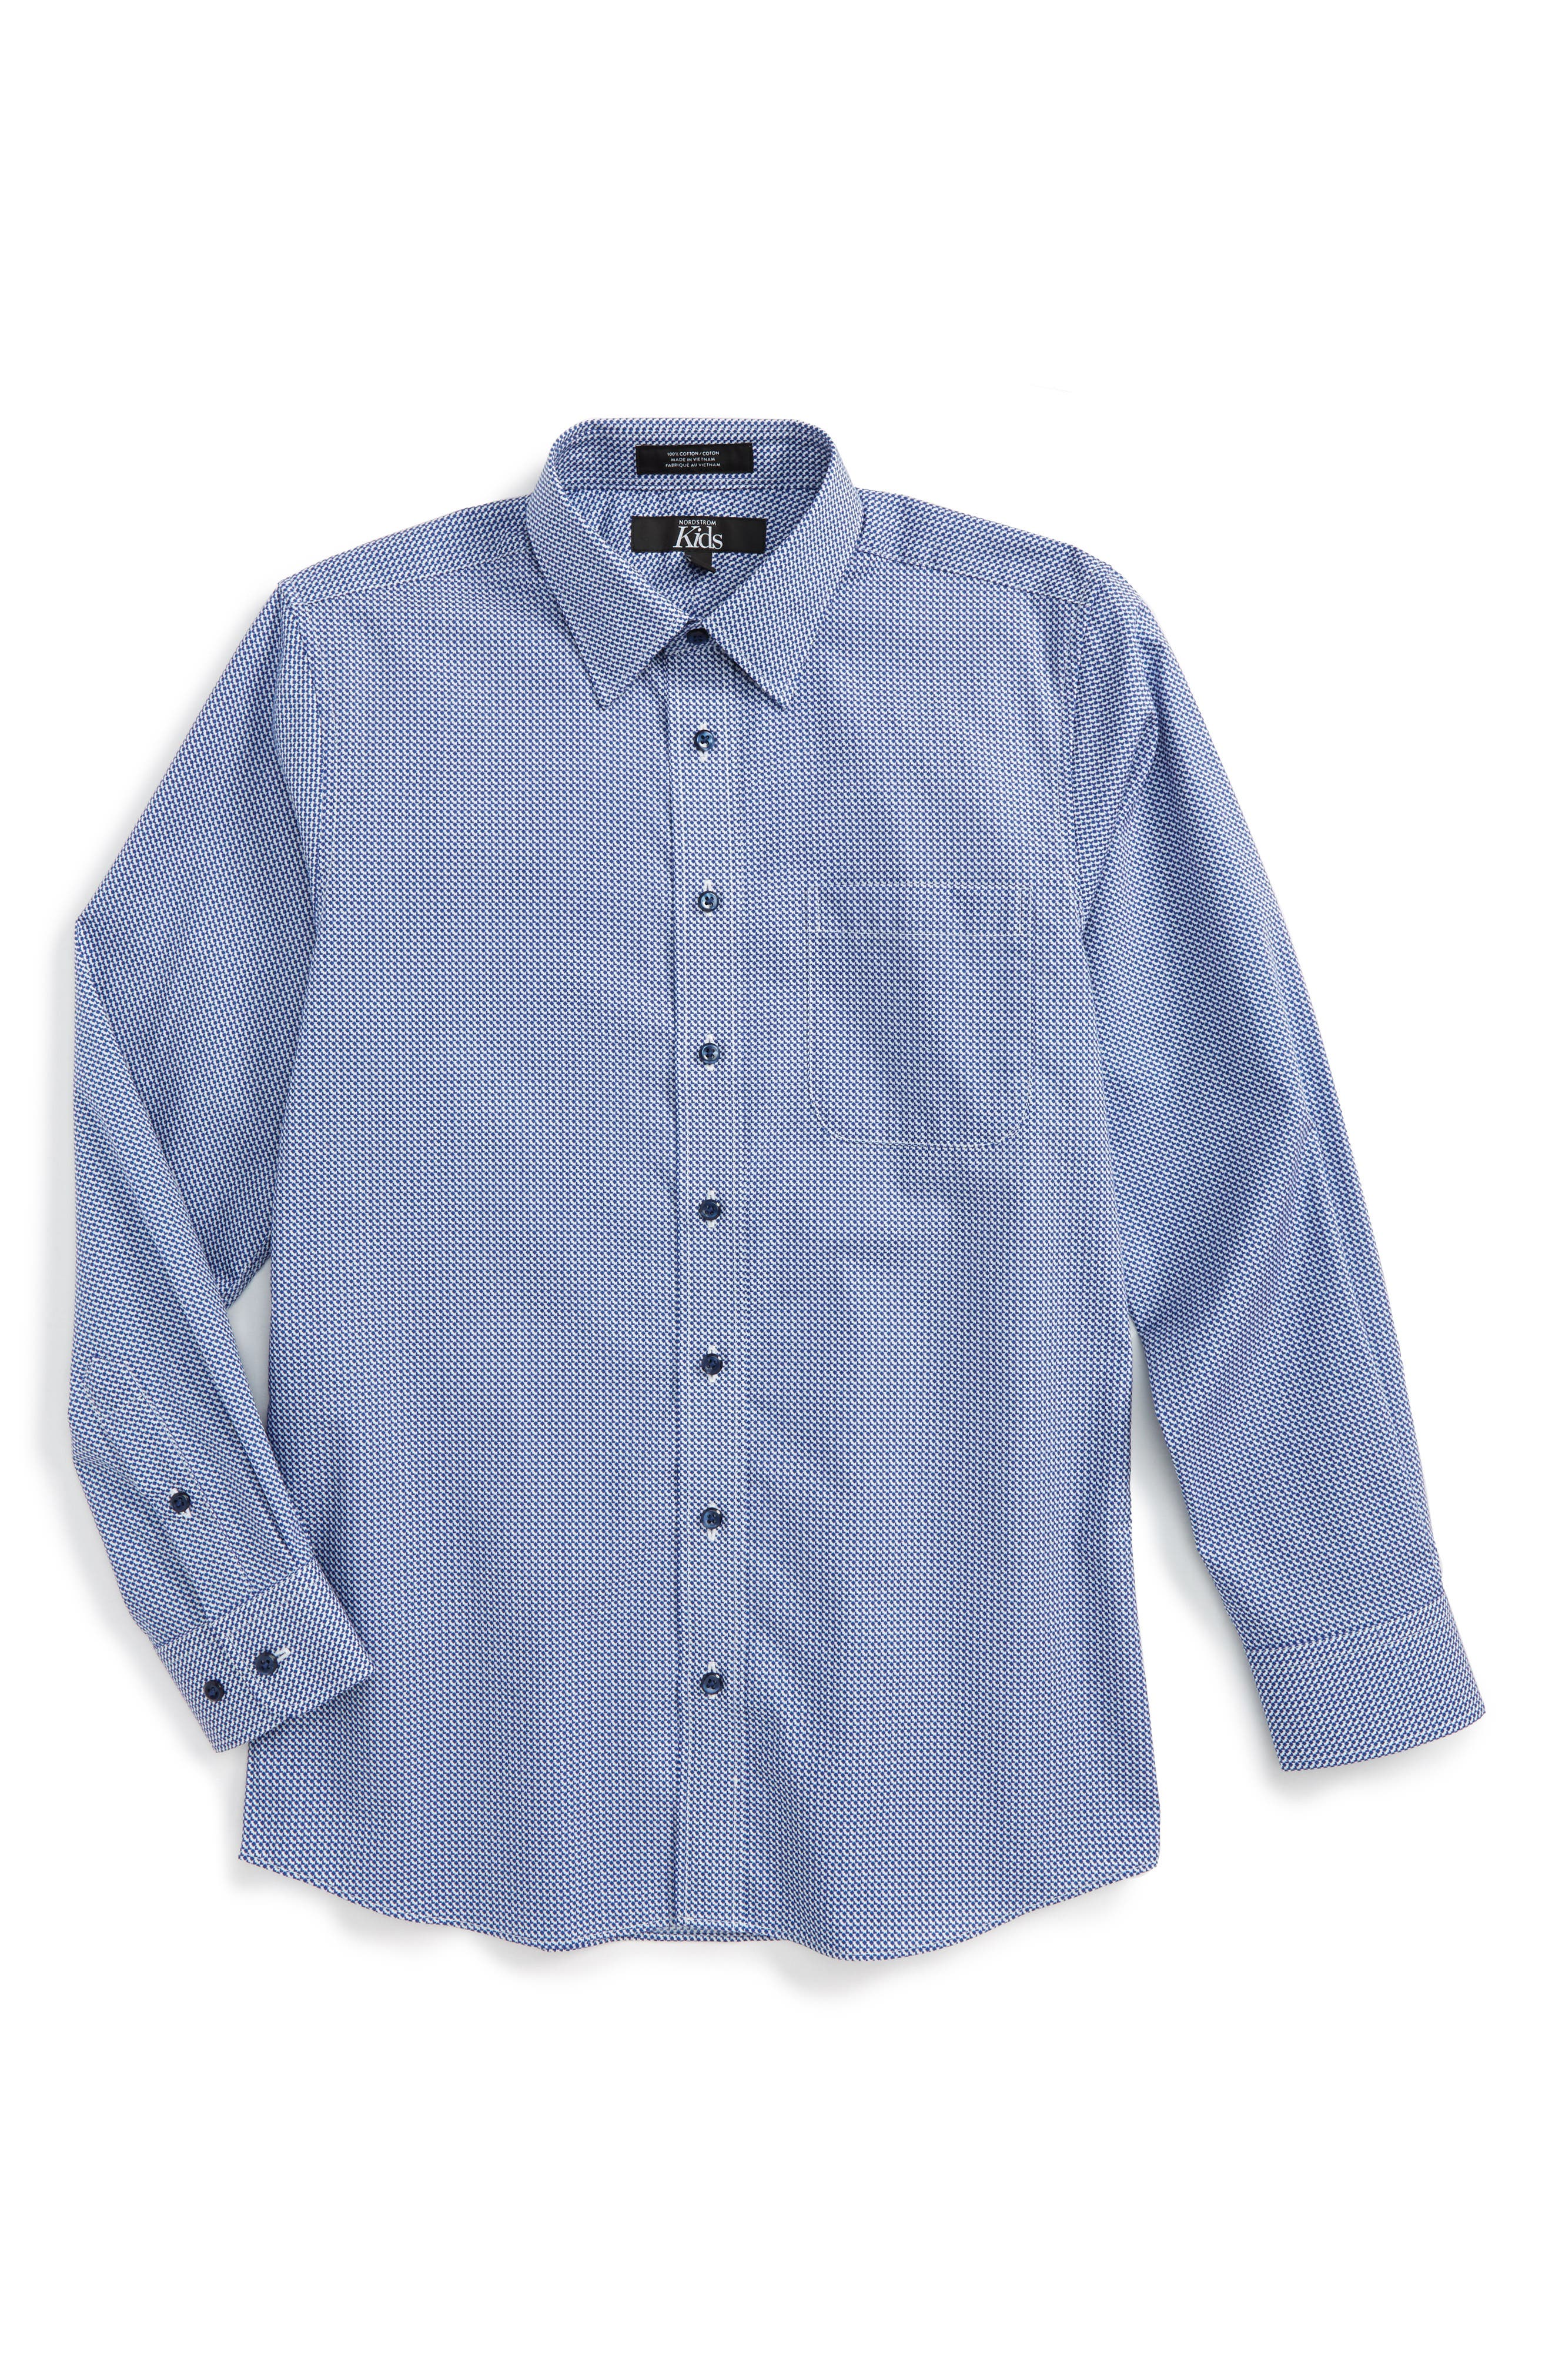 Nordstrom Neat Dress Shirt (Big Boys)